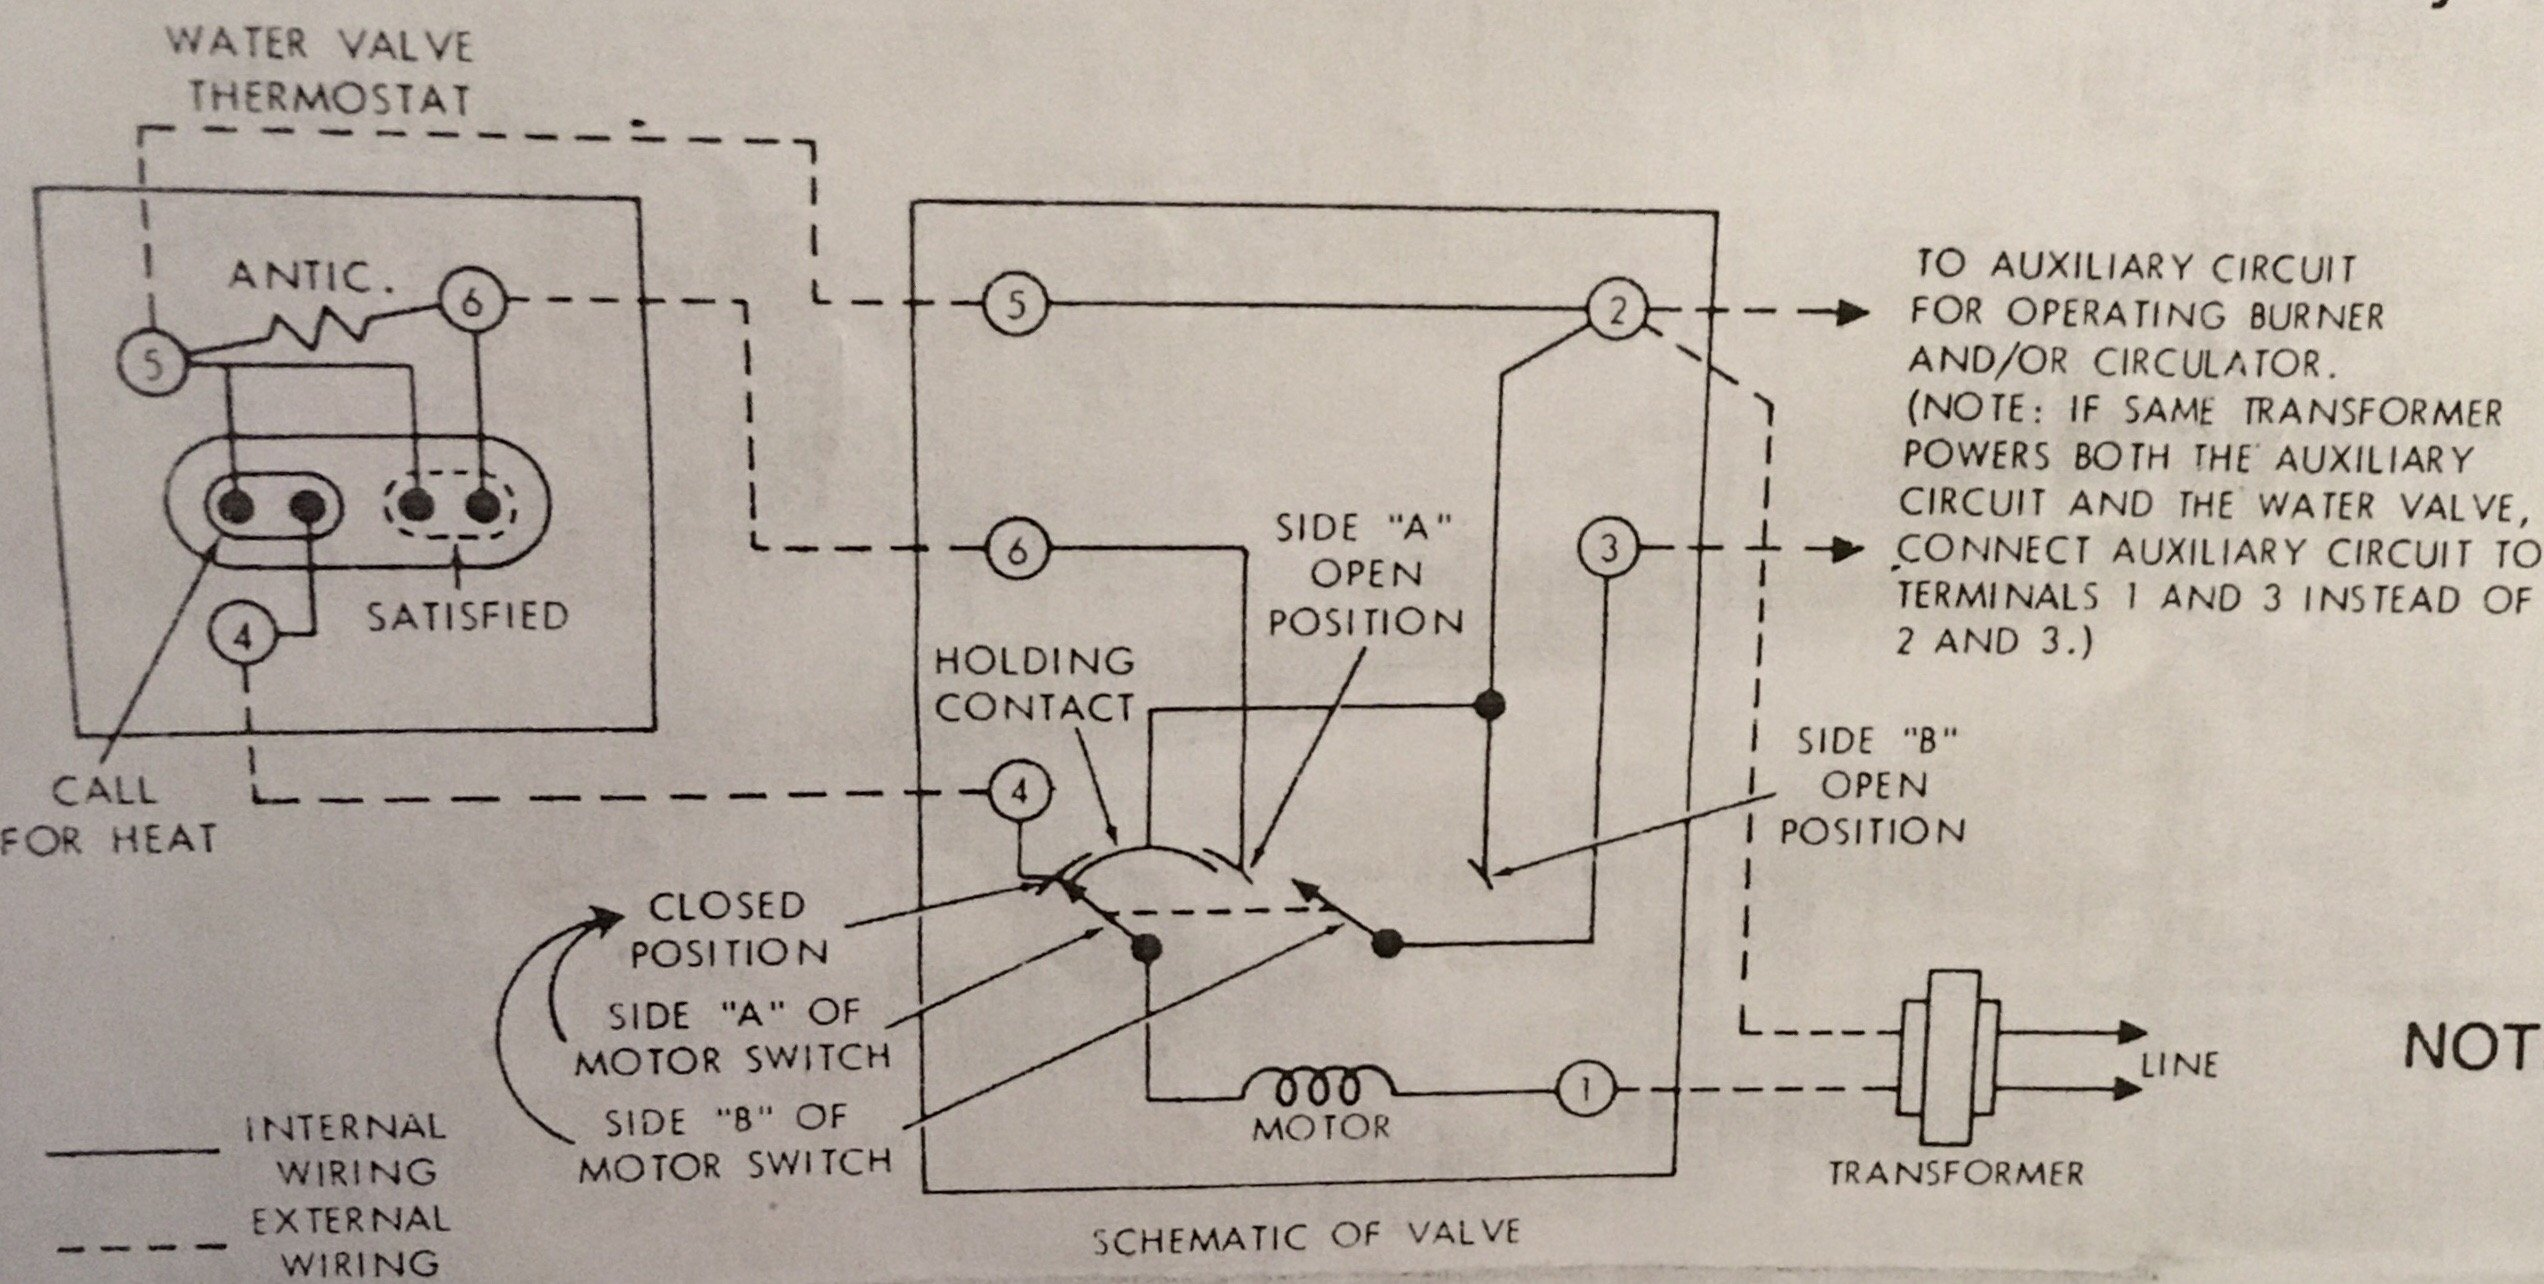 also included here is the wiring schematic for the relay  i'm particularly  concerned about having two transformers in the same system